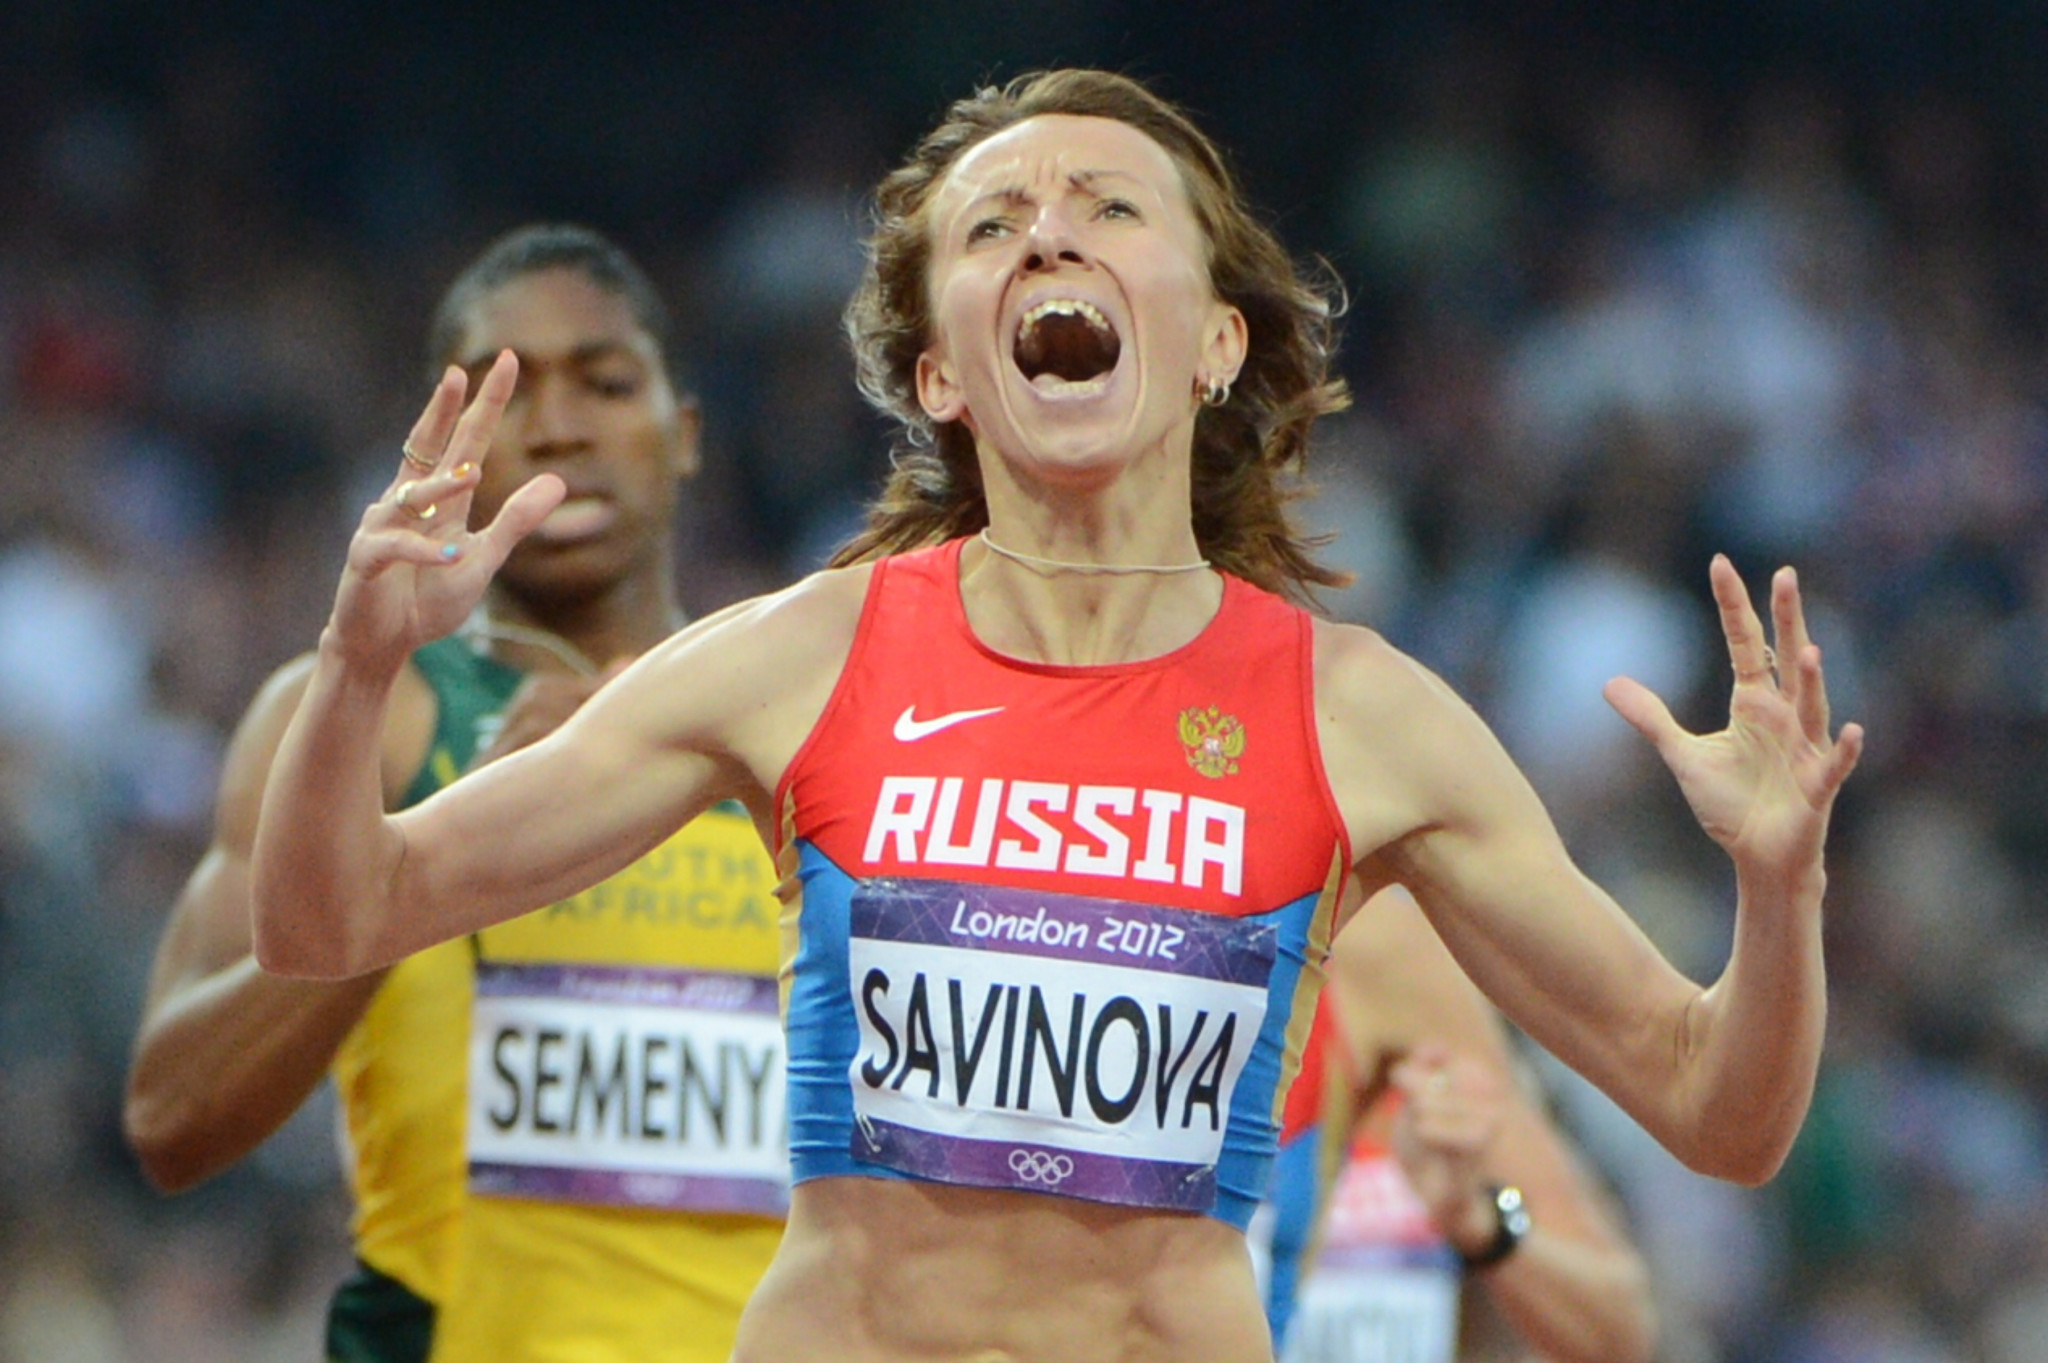 Russia's Mariya Savinova beat South Africa's Caster Semenya to the Olympic 800 metres at London 2012 ©Getty Images